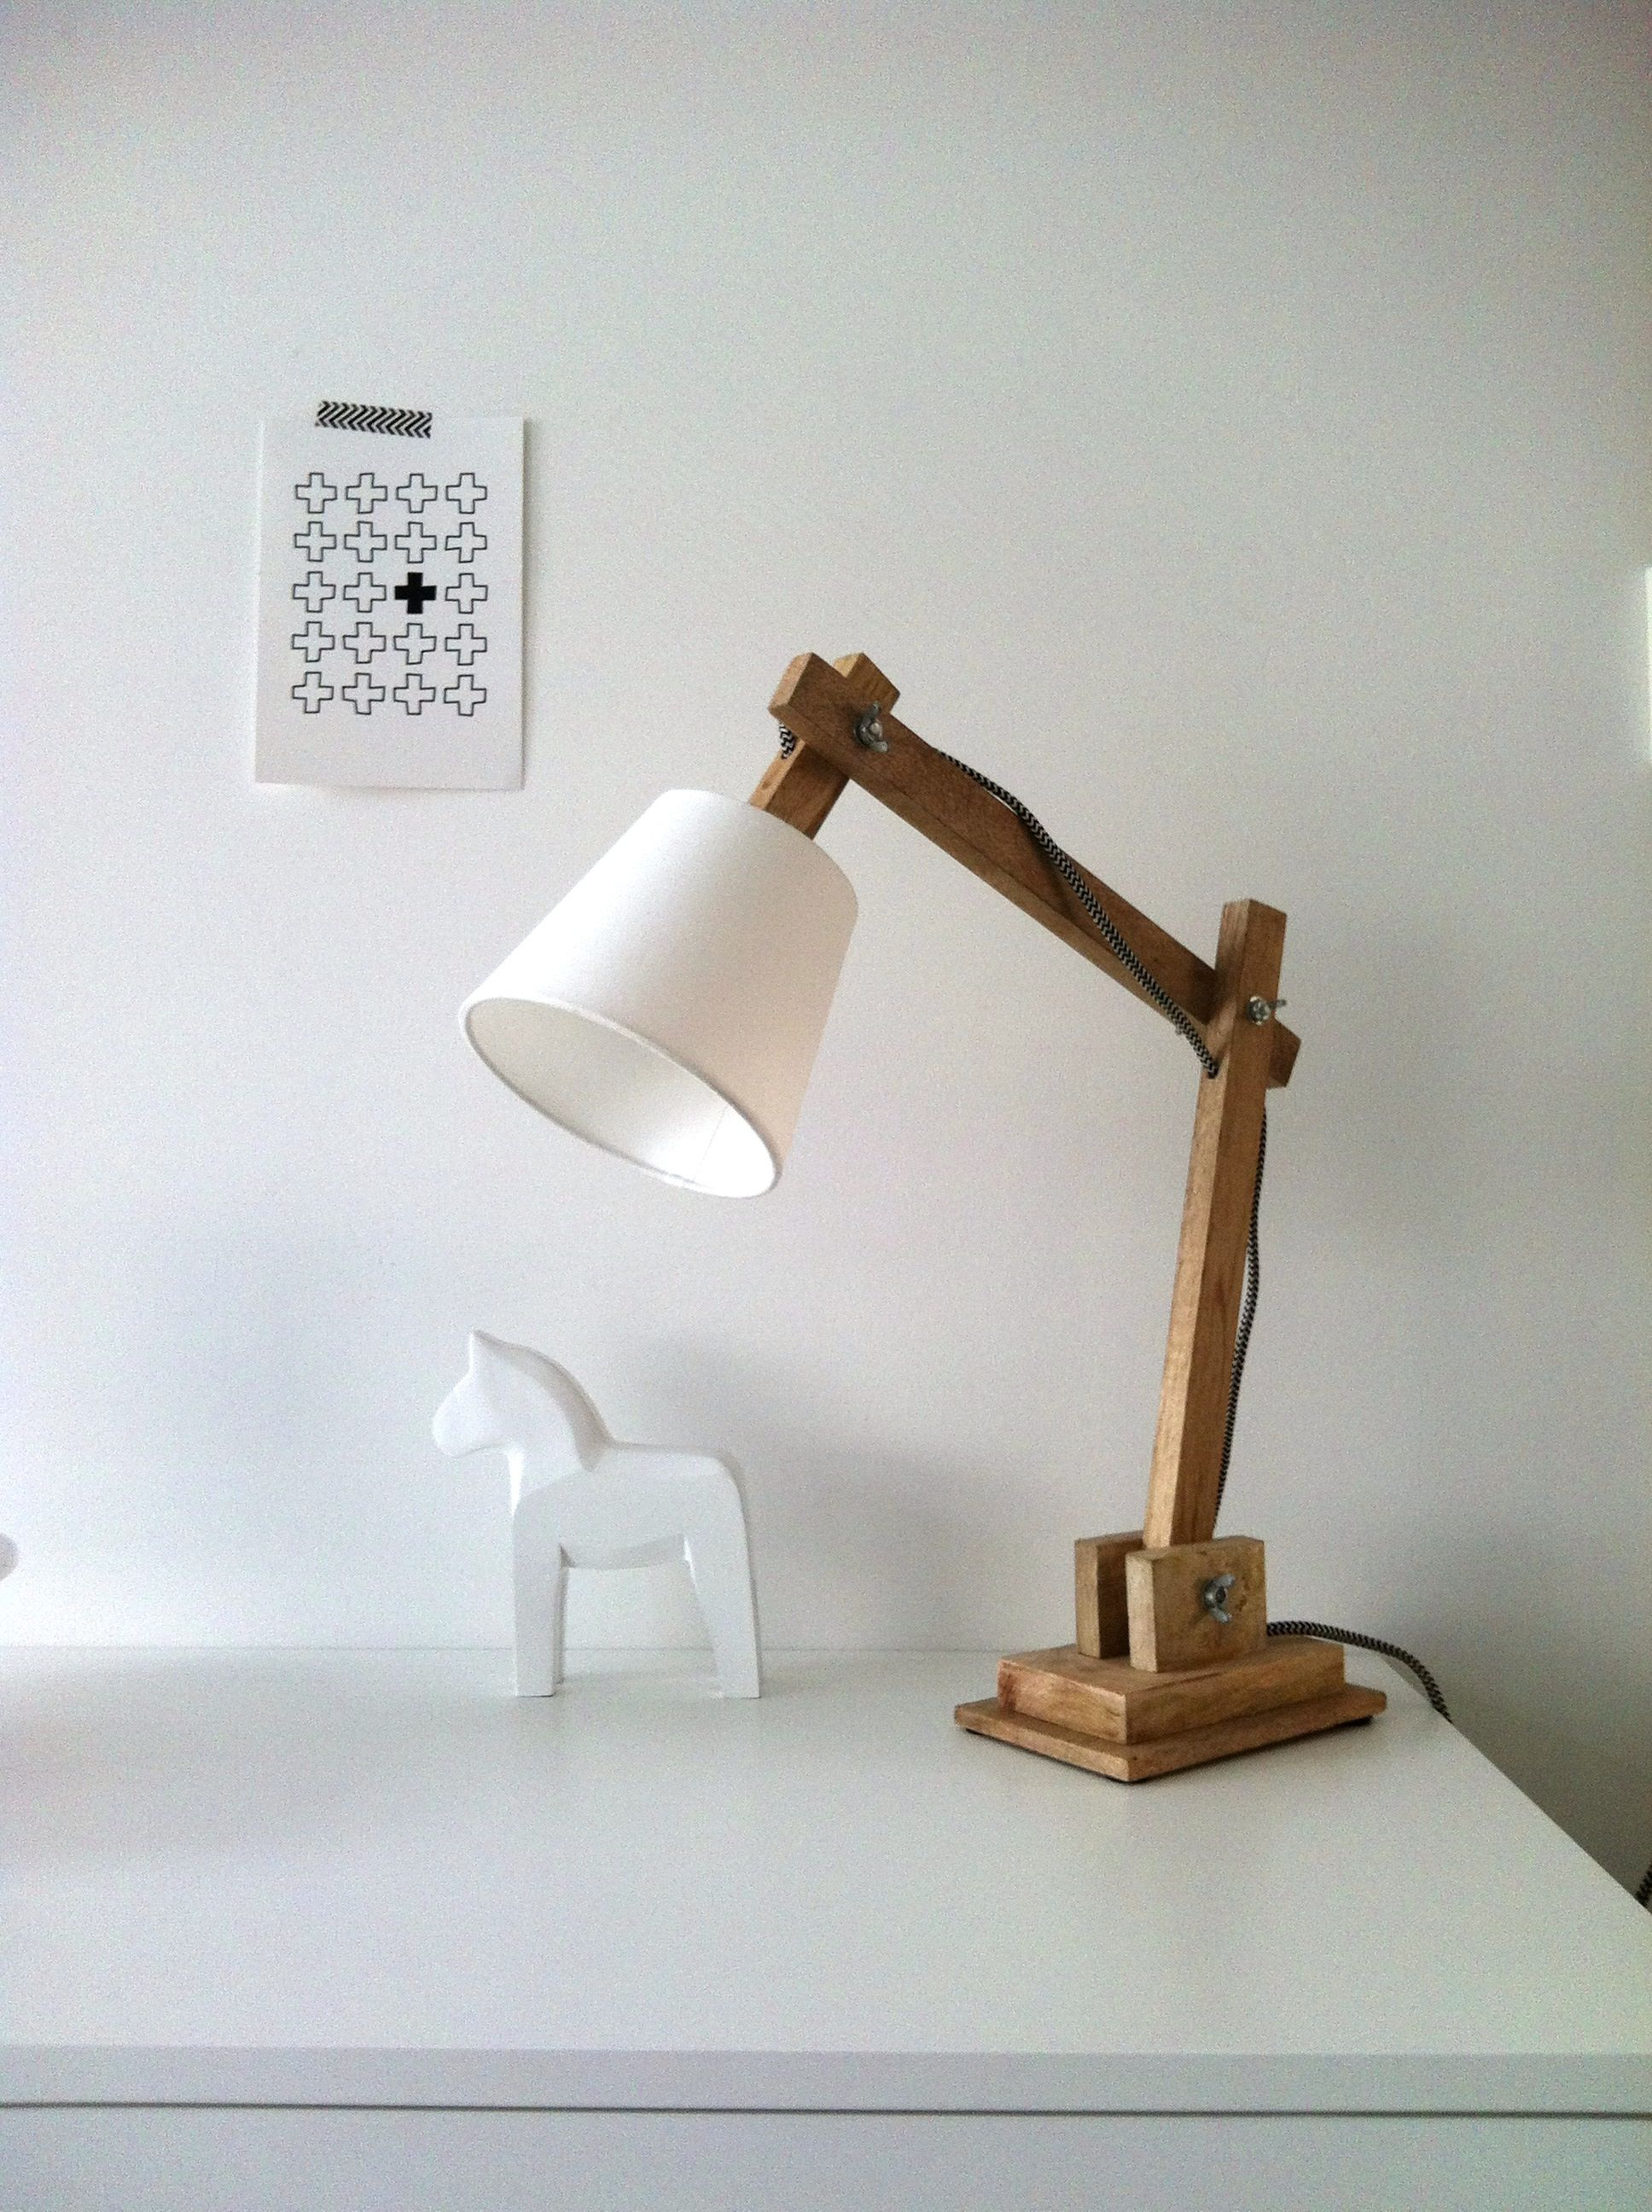 Cool Desk Lamp cool desk lamp | light it up | pinterest | desk lamp, desks and lights